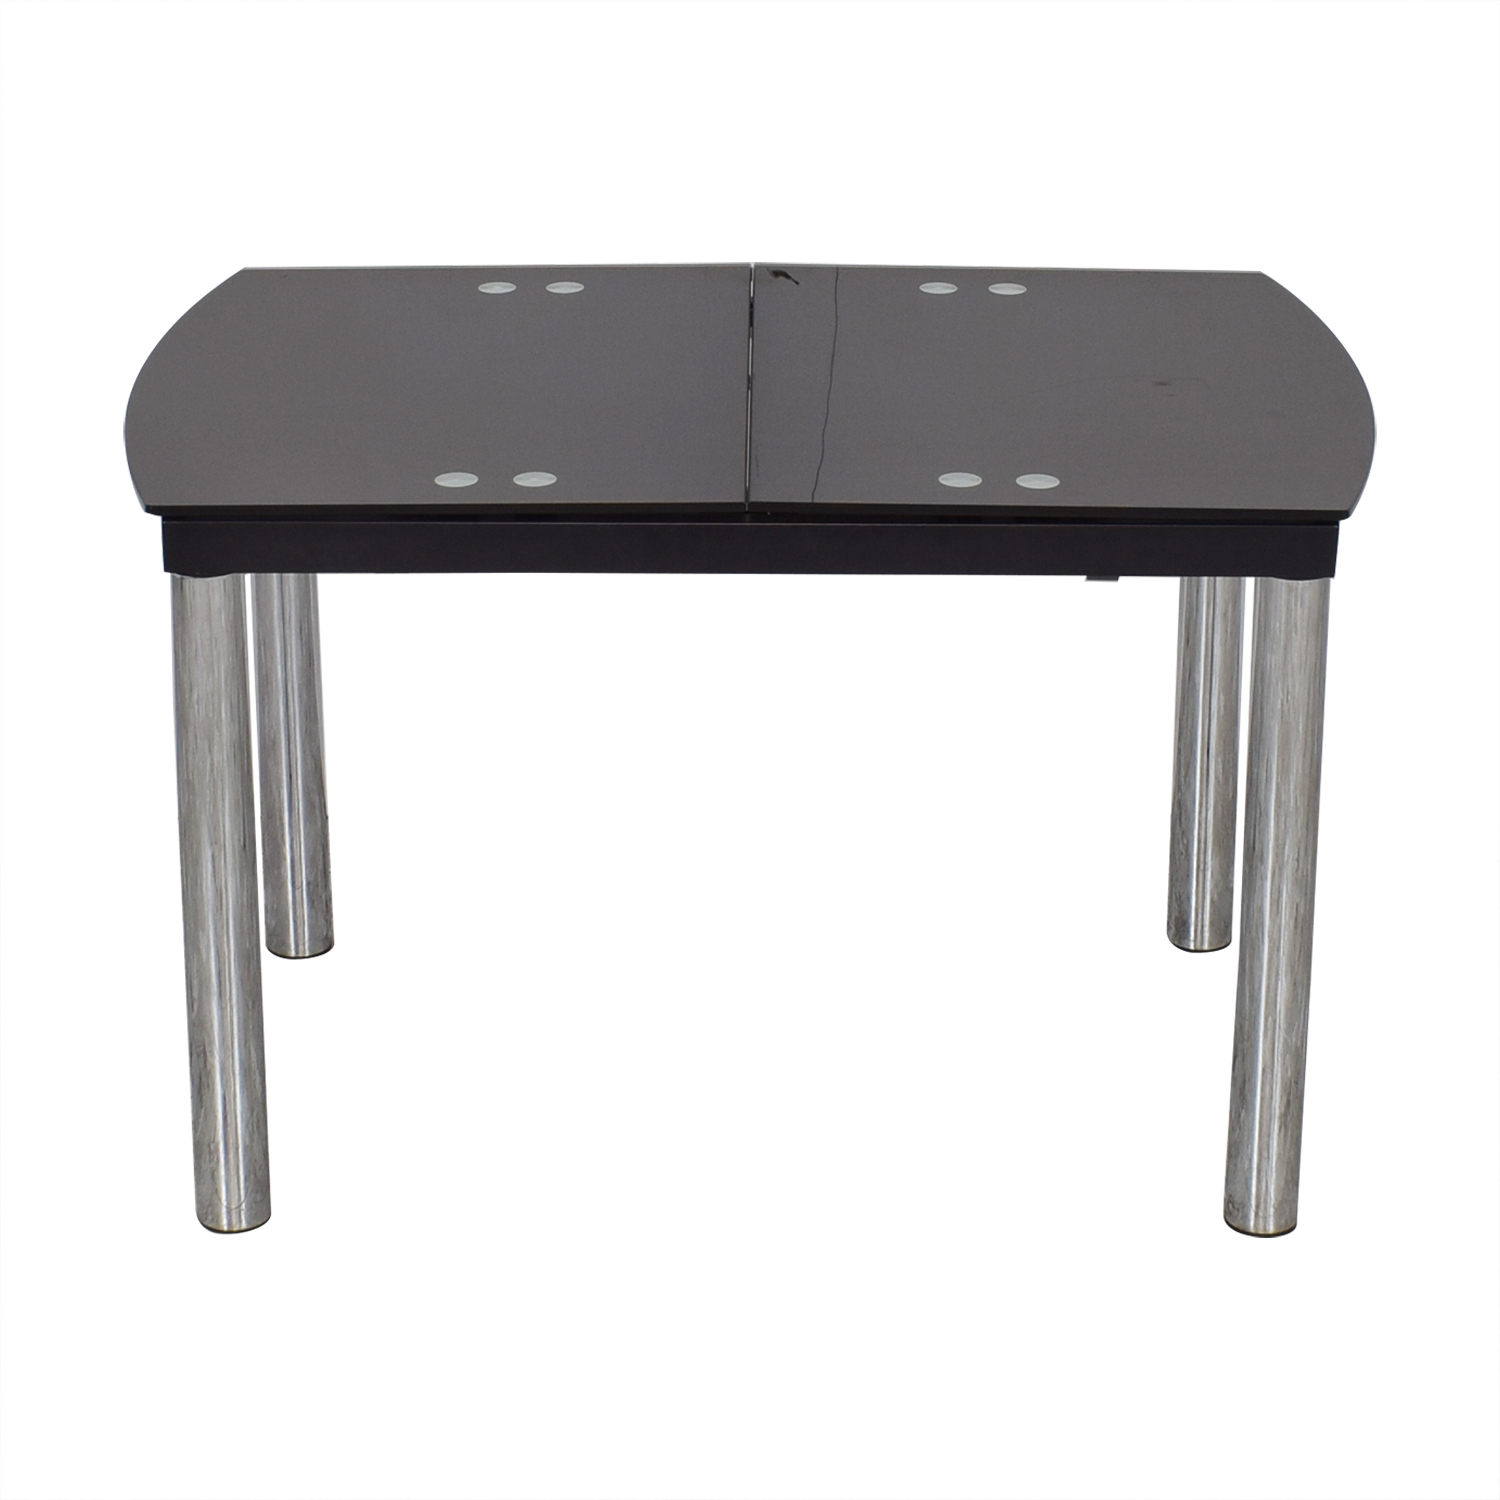 Structube Structube Extendable Dining Table for sale